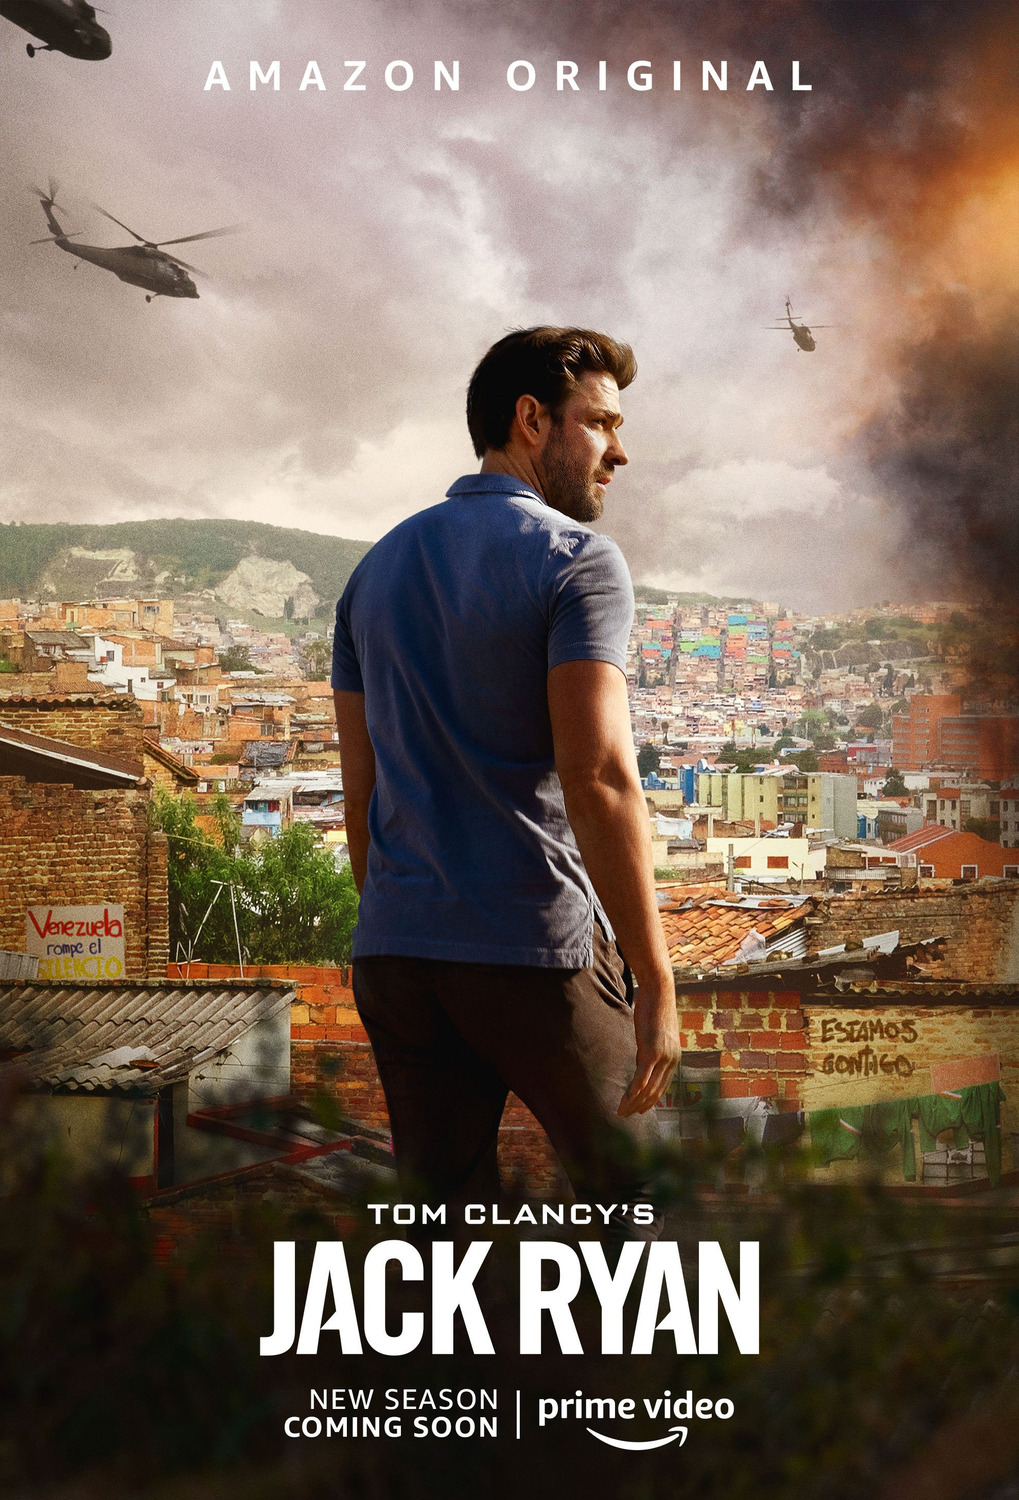 Extra Large Movie Poster Image for Tom Clancy's Jack Ryan (#5 of 5)